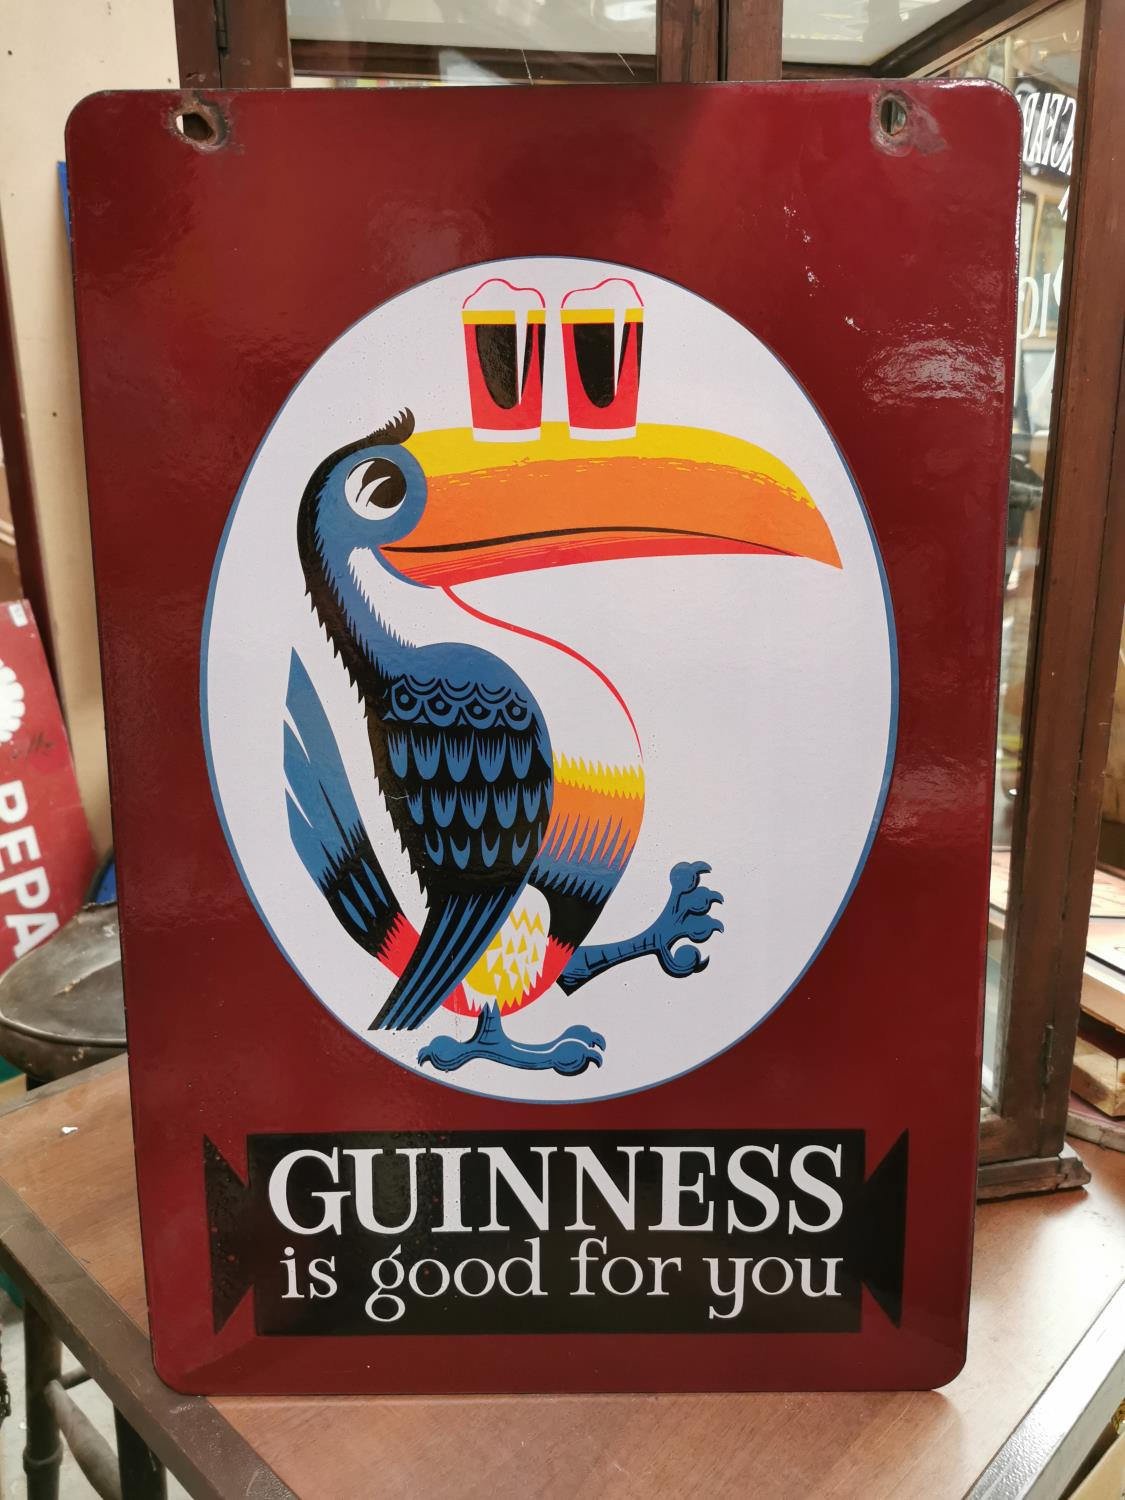 Guinness Is Good For You toucan advertising sign.